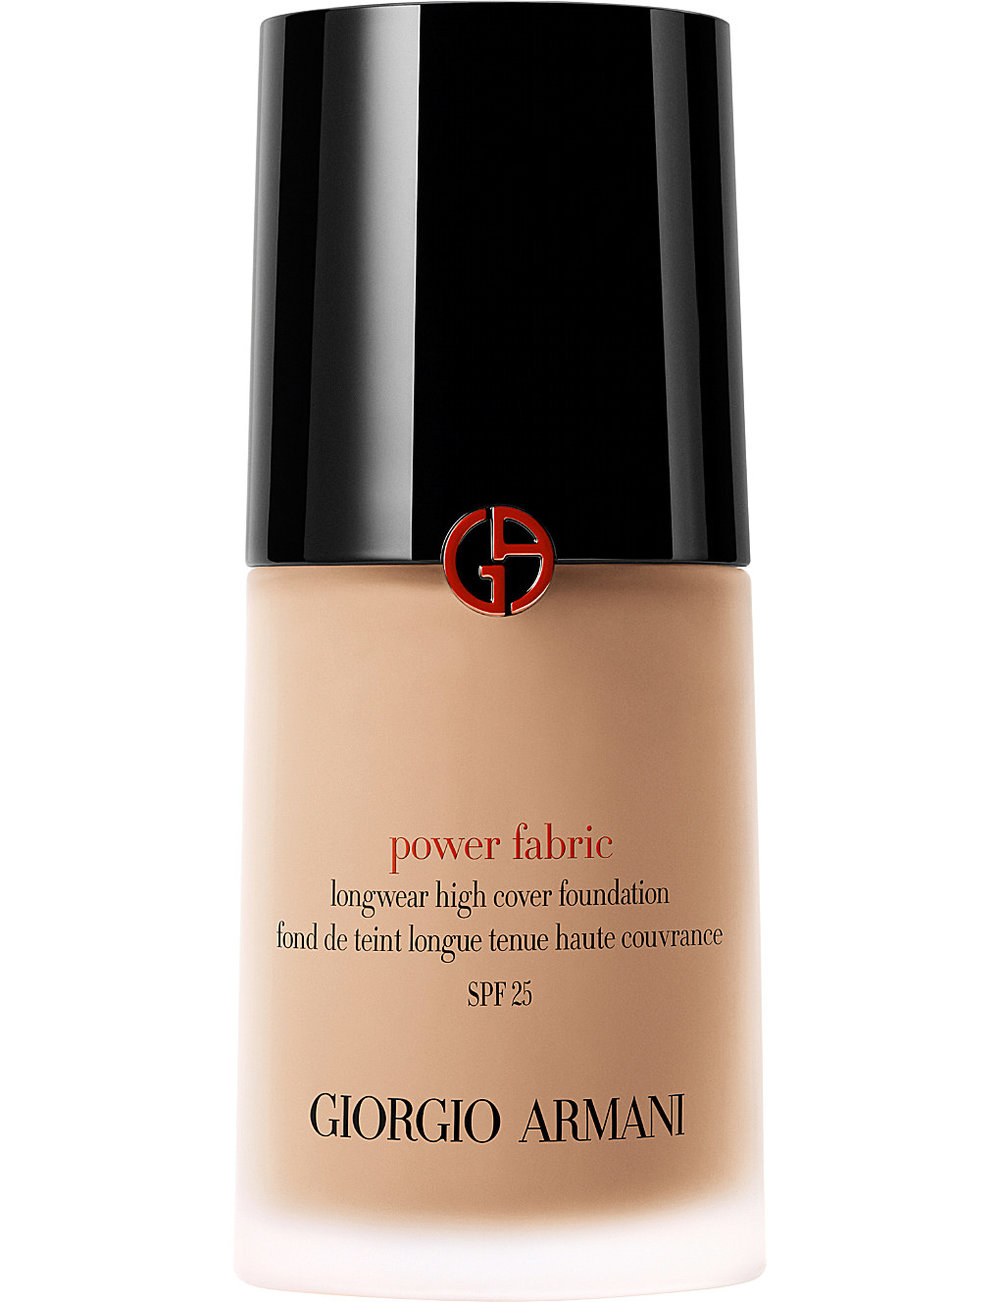 Giorgio Armani Power Fabric Foundation £40.00 from Selfridges   The ultimate full cover yet natural foundation